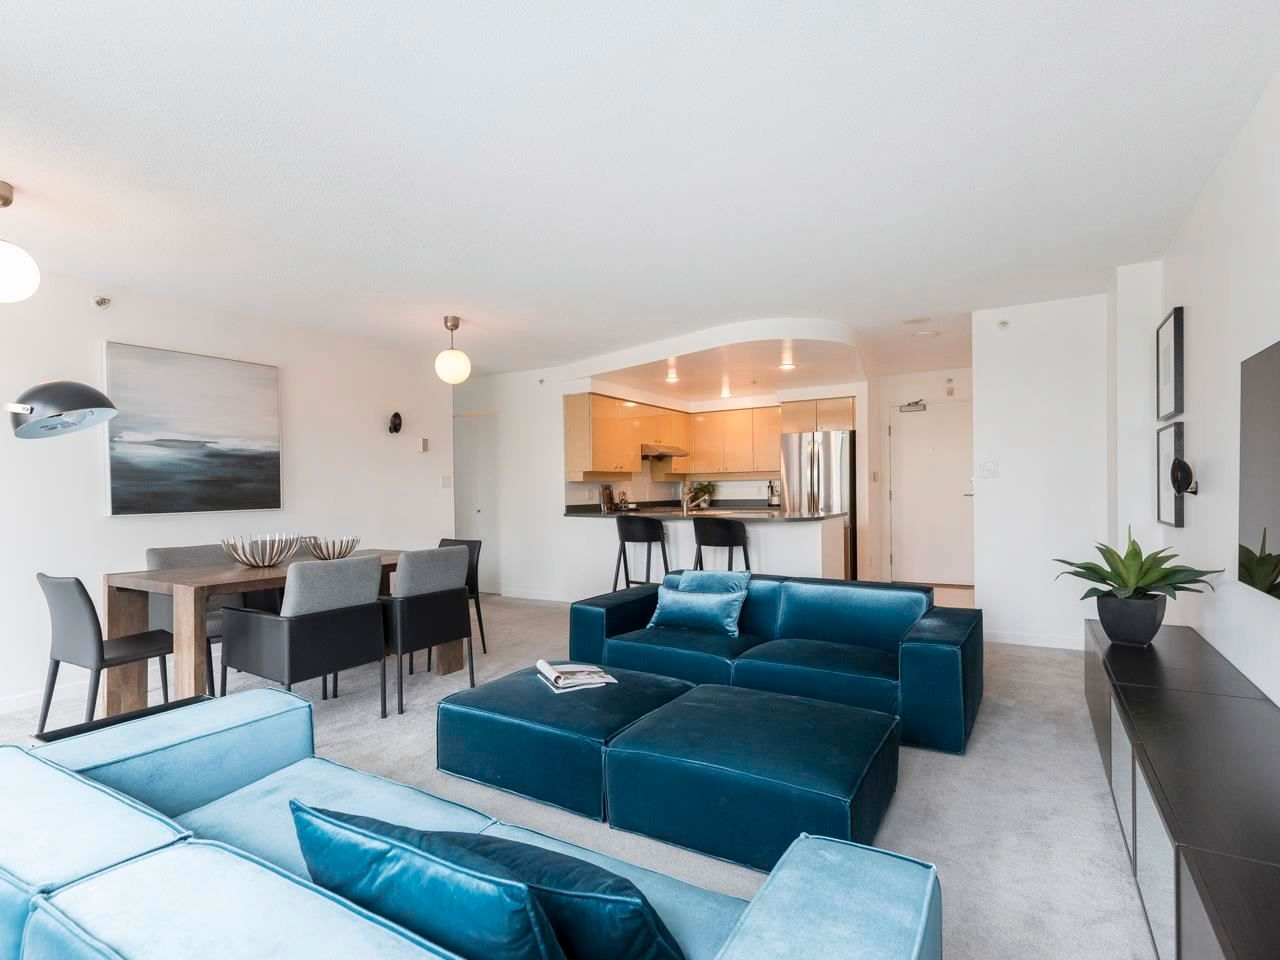 Main Photo: 305 1009 EXPO BOULEVARD in Vancouver: Yaletown Condo for sale (Vancouver West)  : MLS®# R2575432